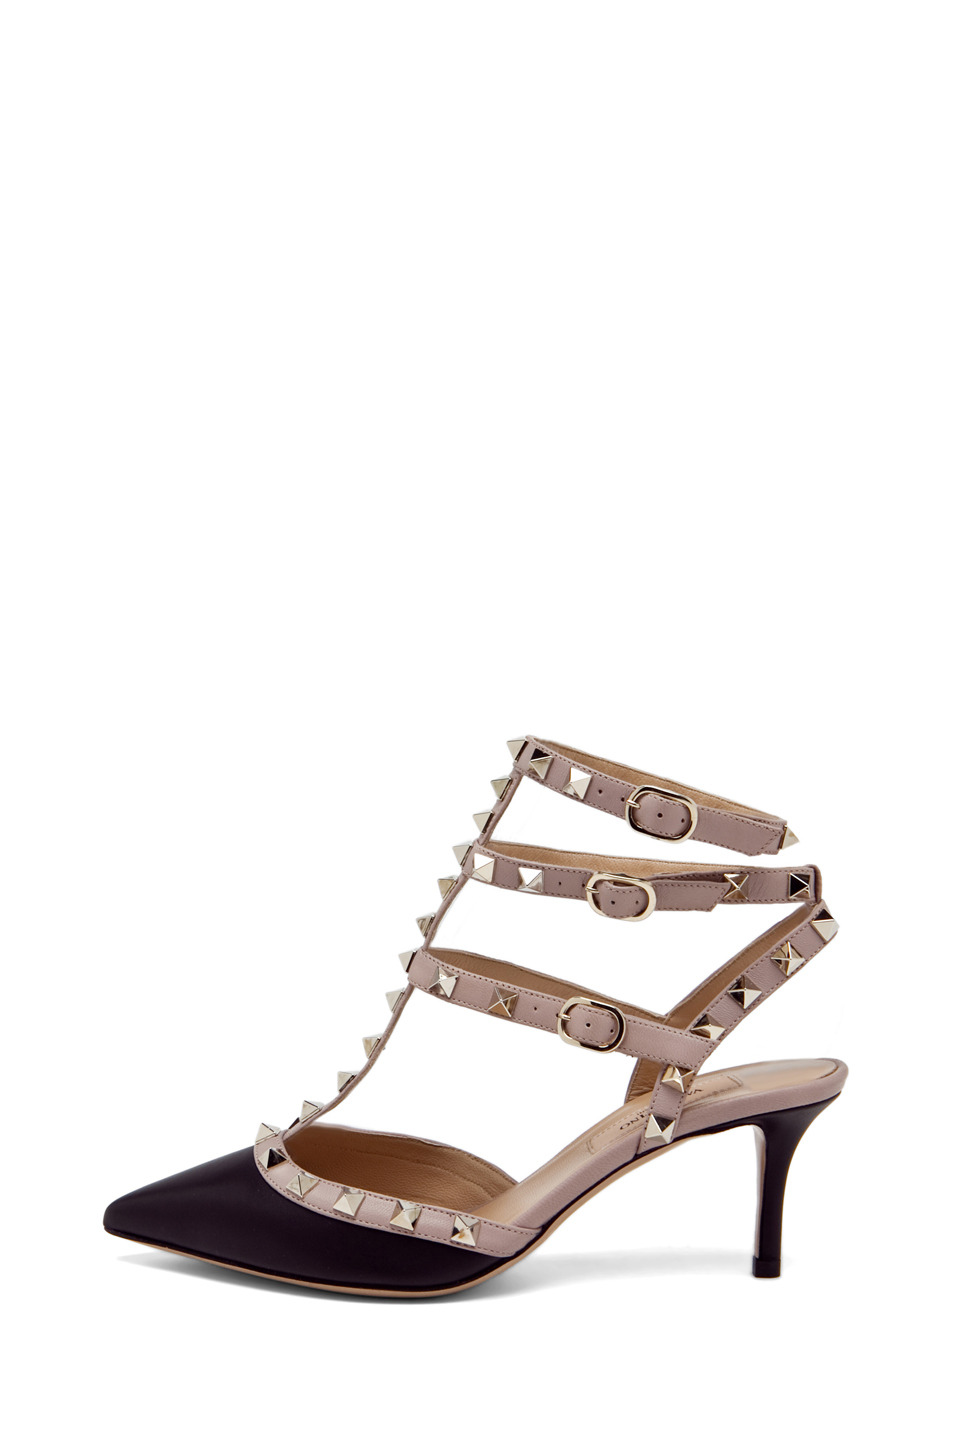 Valentino|Rockstud Leather Sling Back T.65 in Black